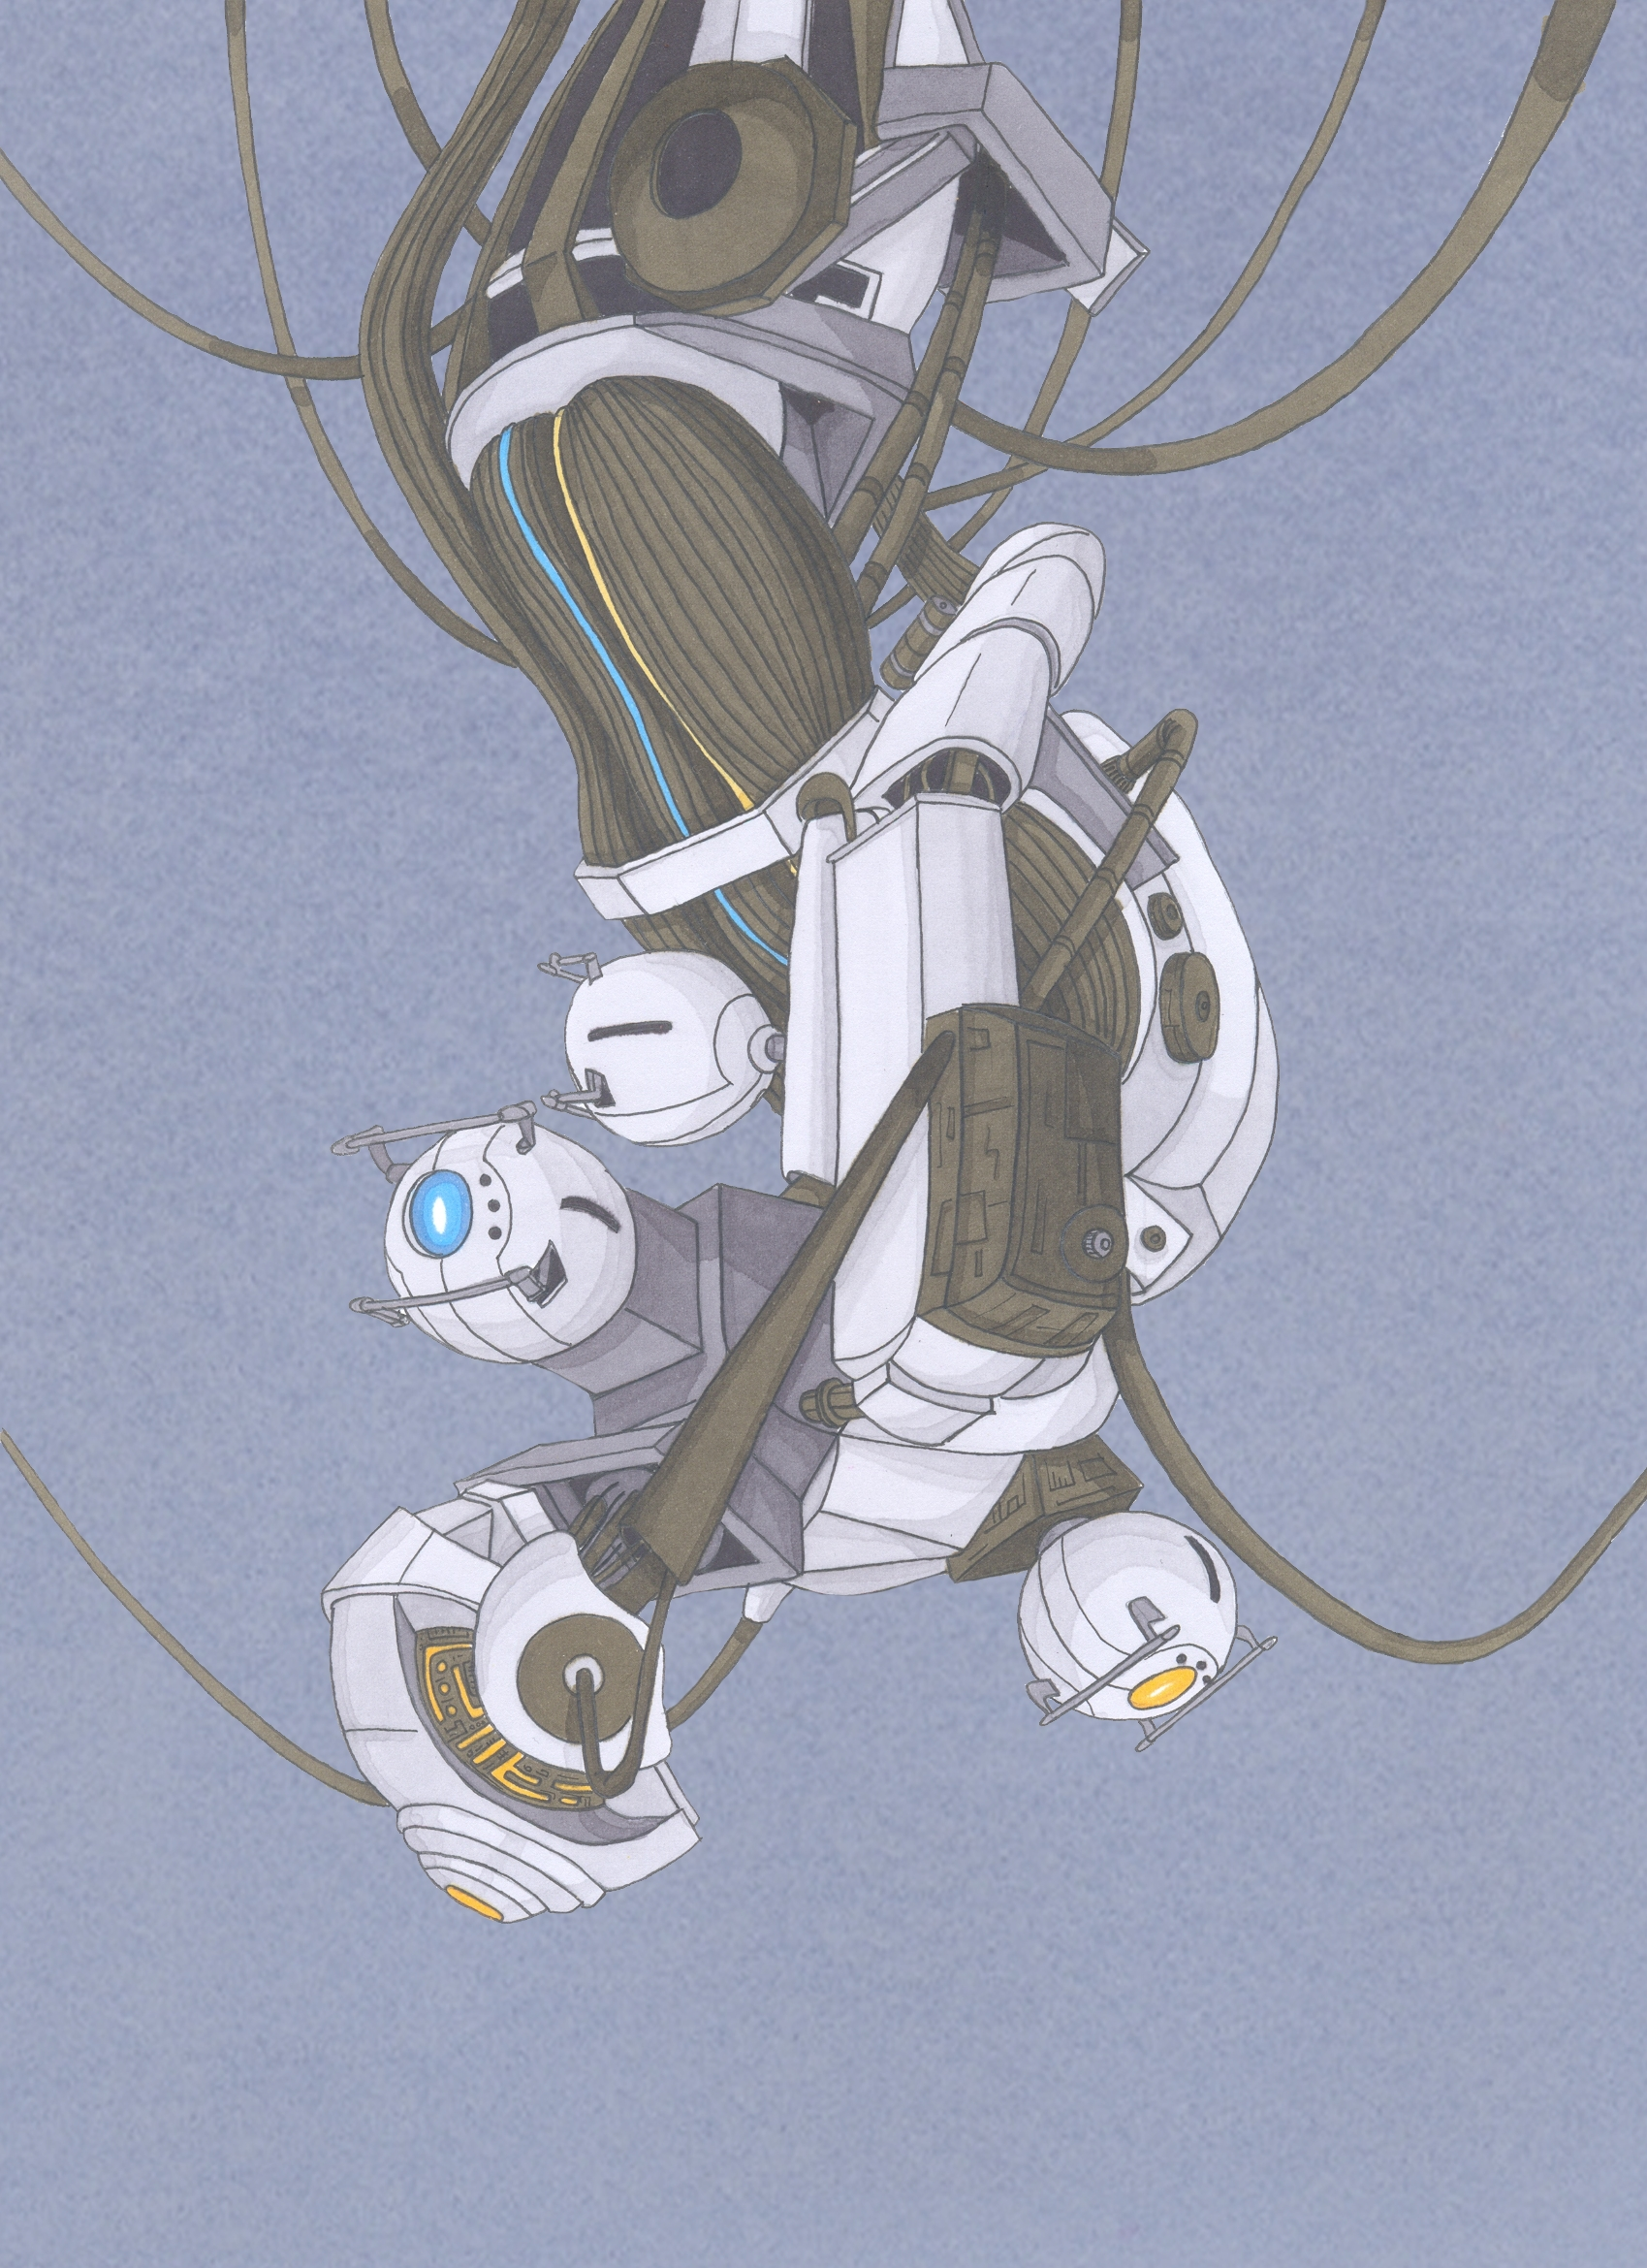 Glados By Nick Of The Dead On Deviantart